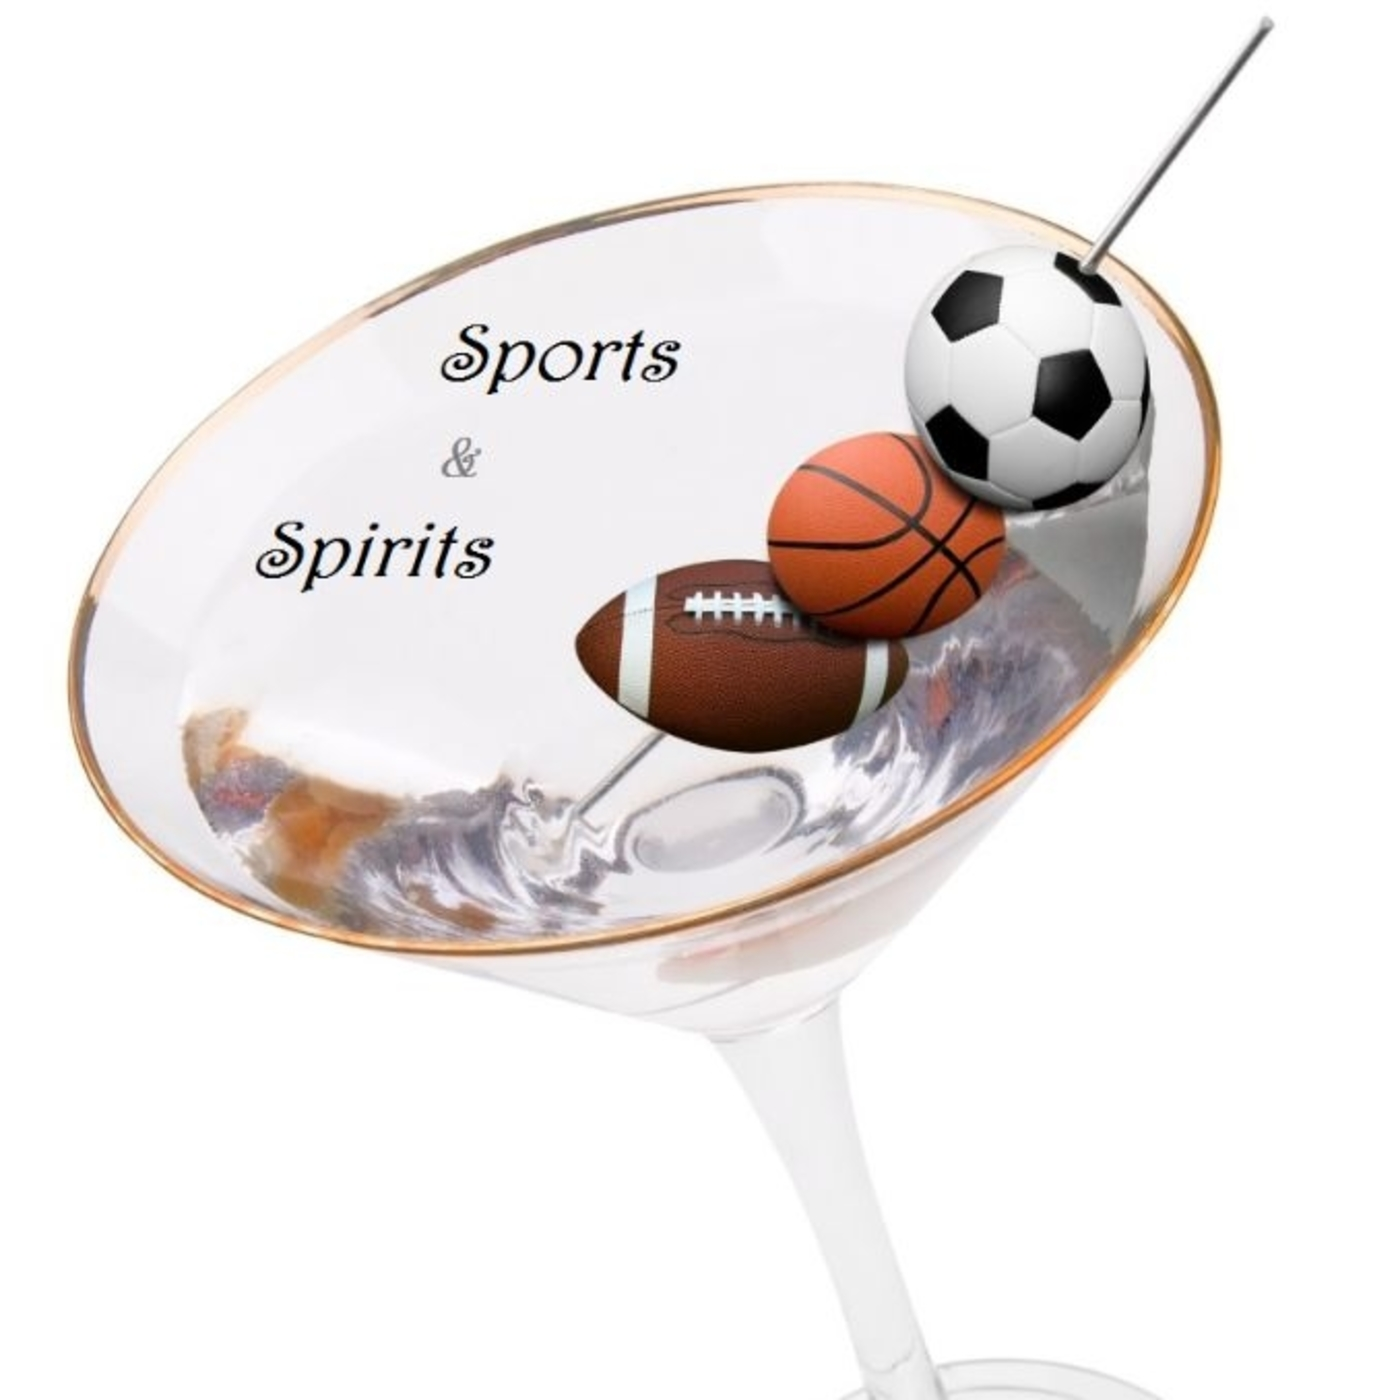 Sports and Spirits show art